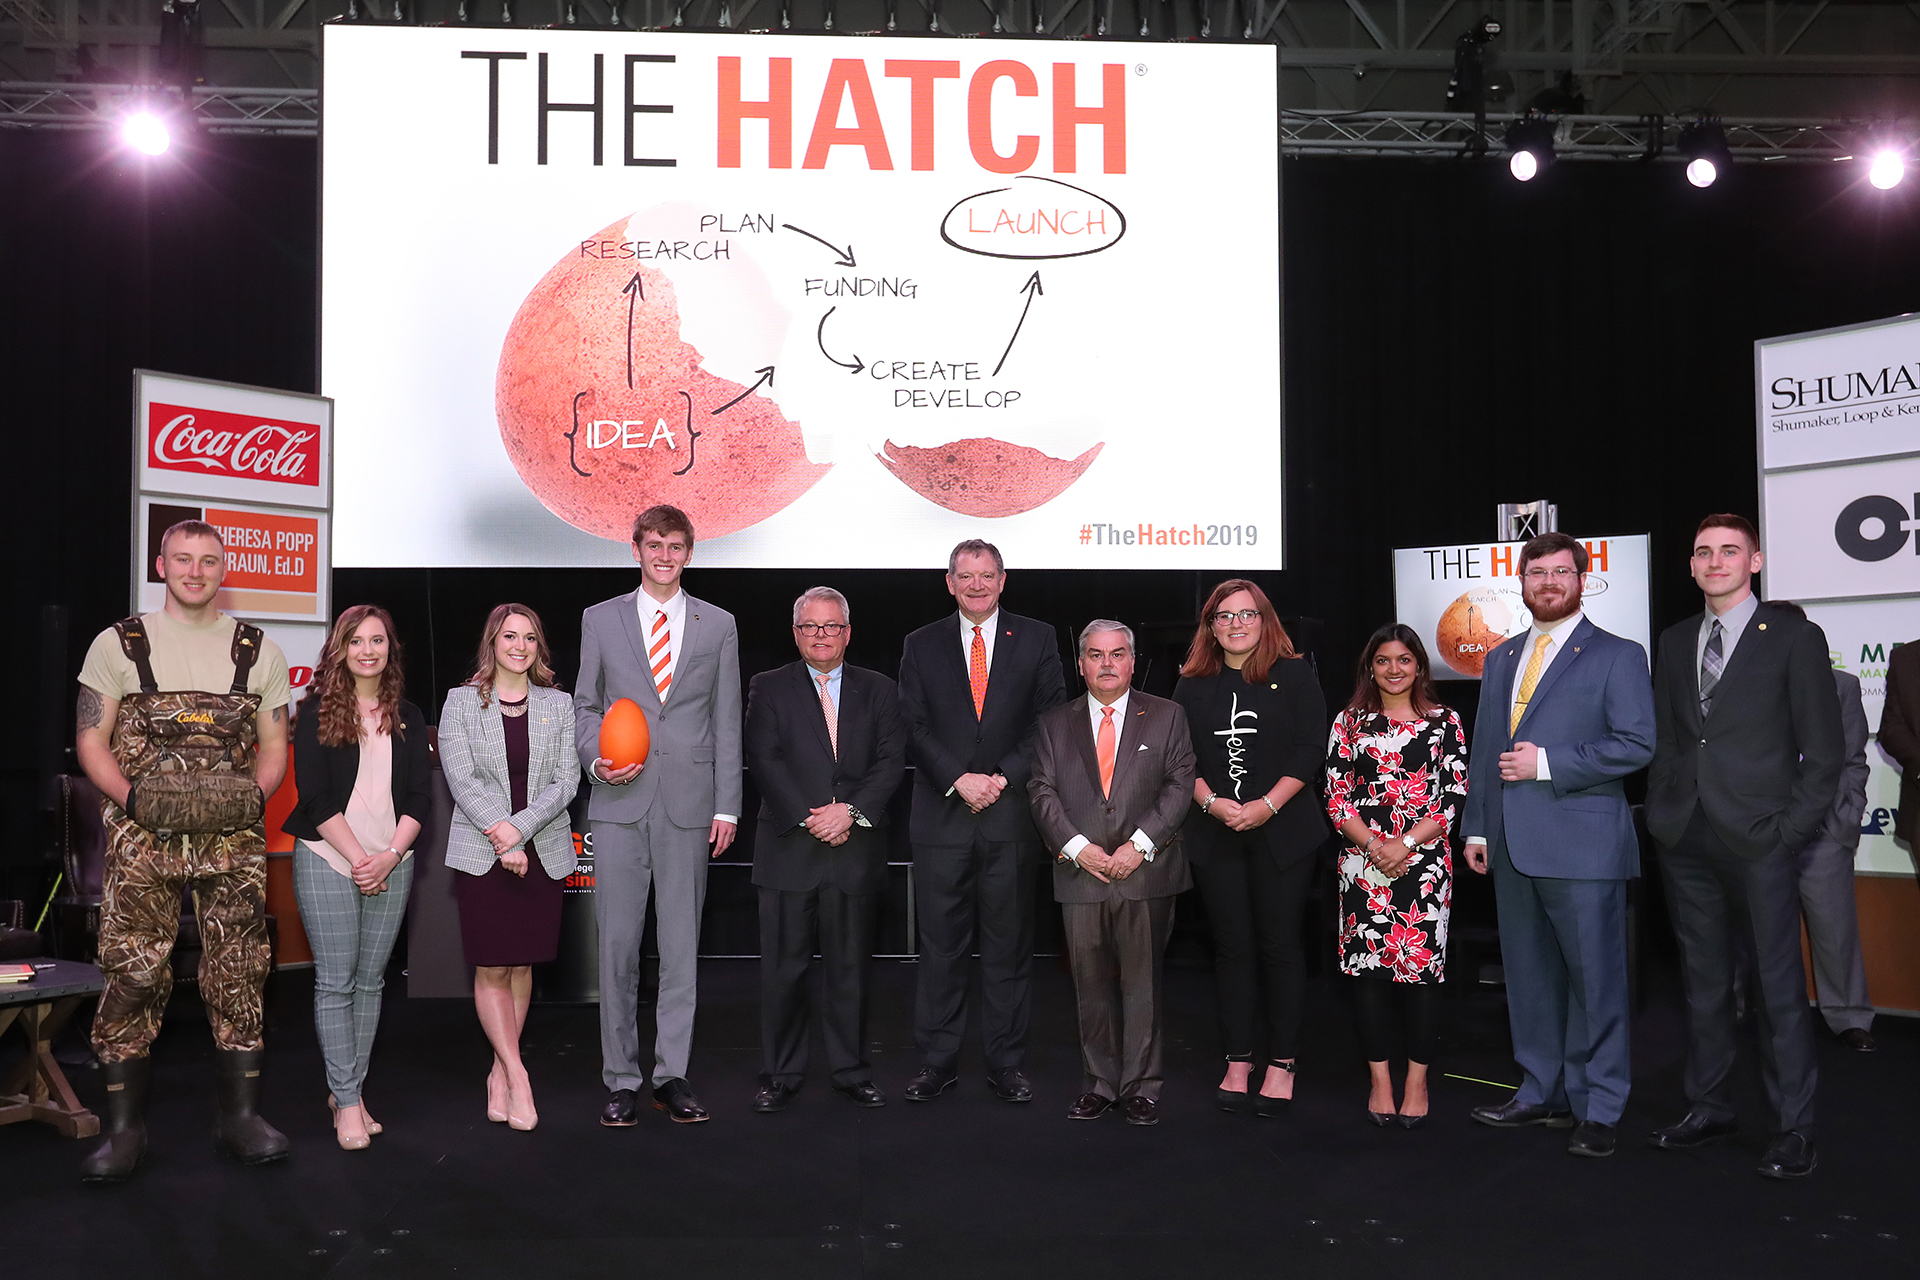 the hatch group image